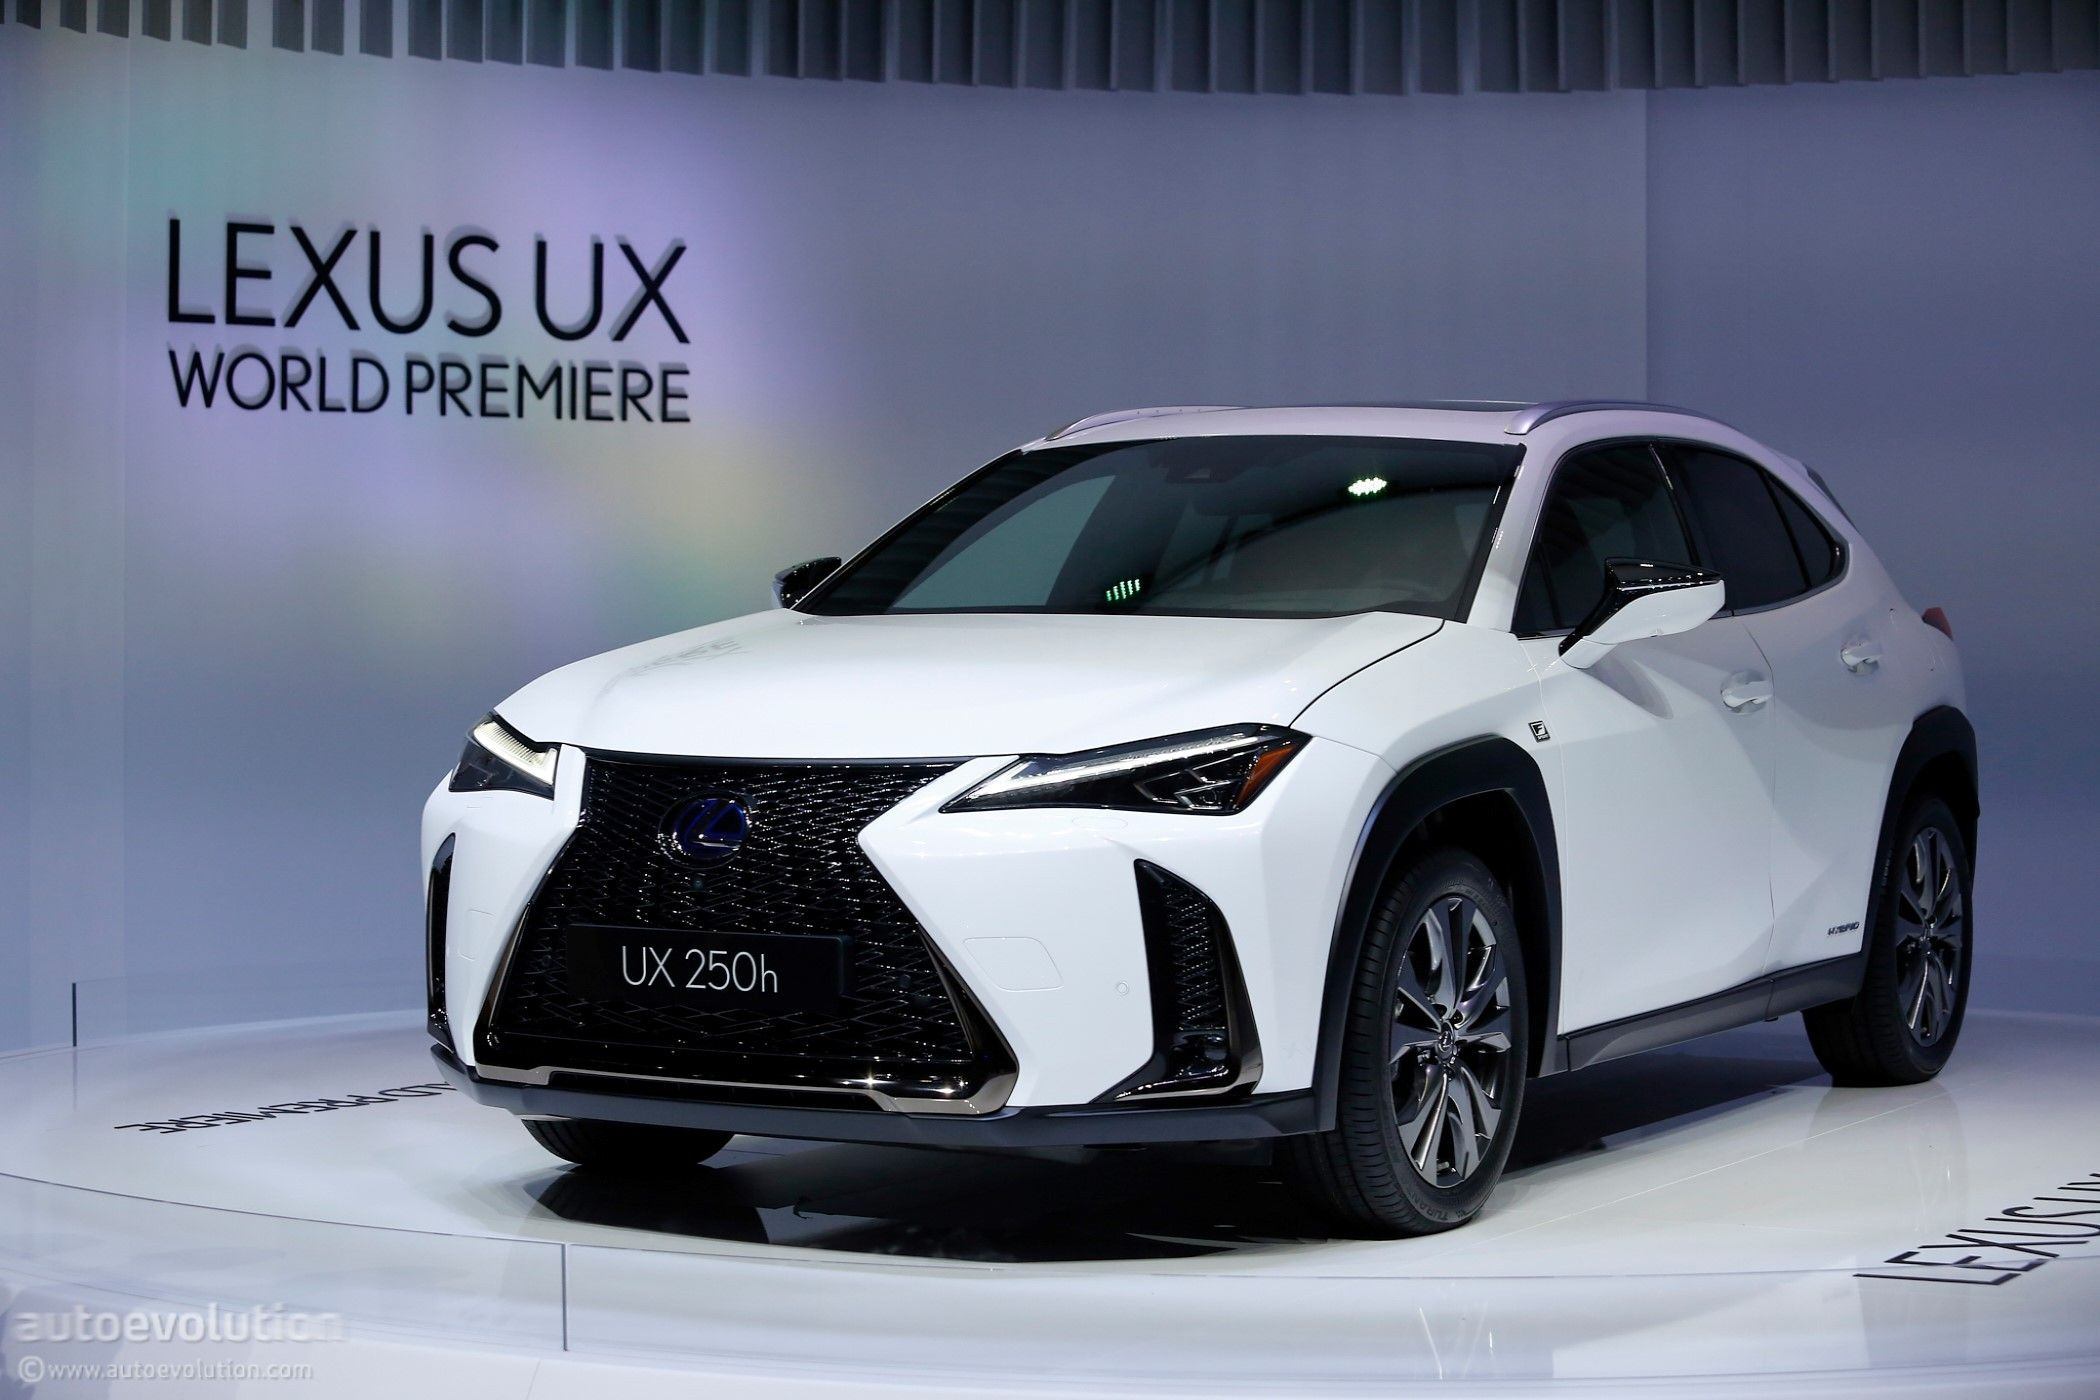 Best Selling Cars 2020.Lexus Hybrid 2020 Lexus Top Selling Vehicle The Rx Gets New